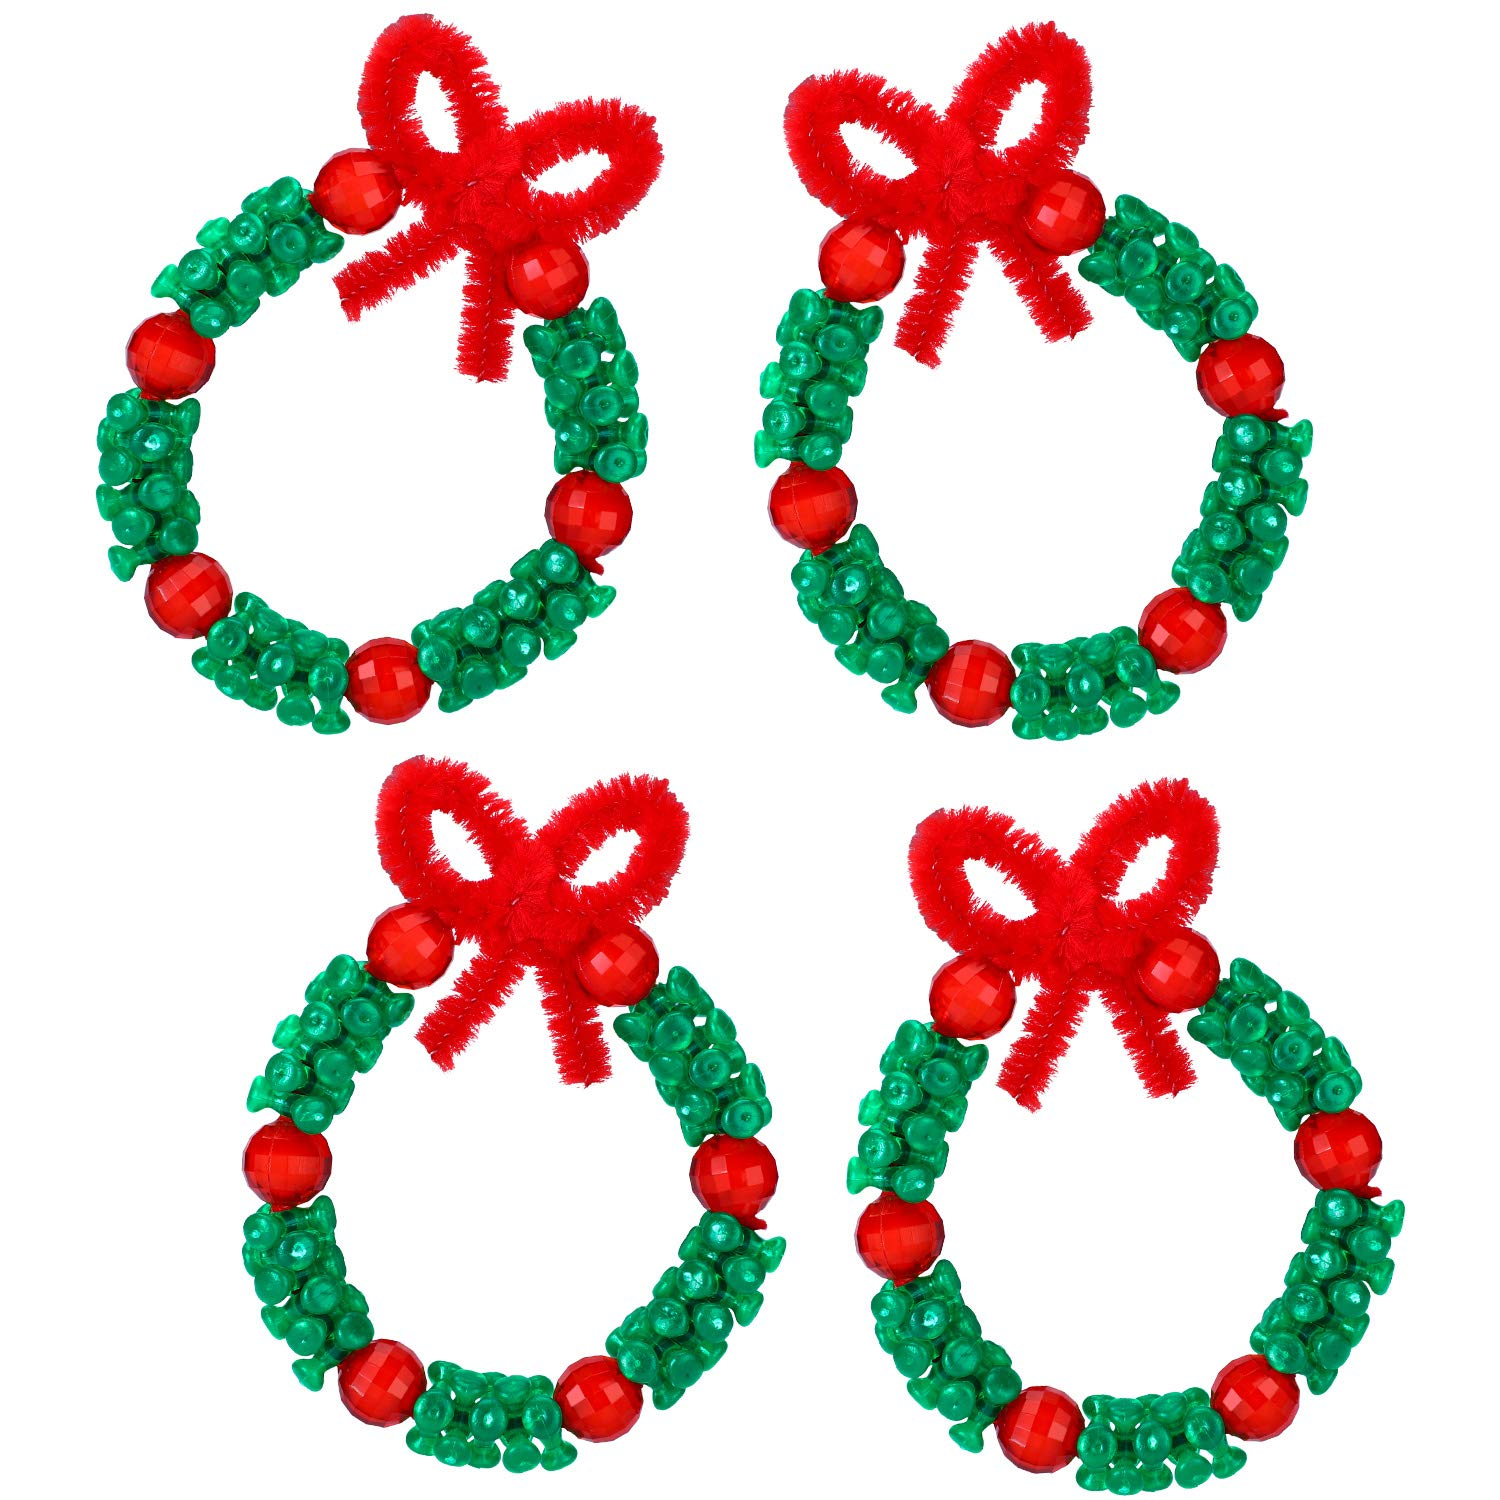 WILLBOND Christmas Beaded Ornament Kit Includes 800 Pieces 10 mm Christmas Tri Beads 32.8 Feet Fishing Line Nylon Cord 50 Pieces Christmas Chenille Stems 200 Pieces Christmas Round Glass Beads